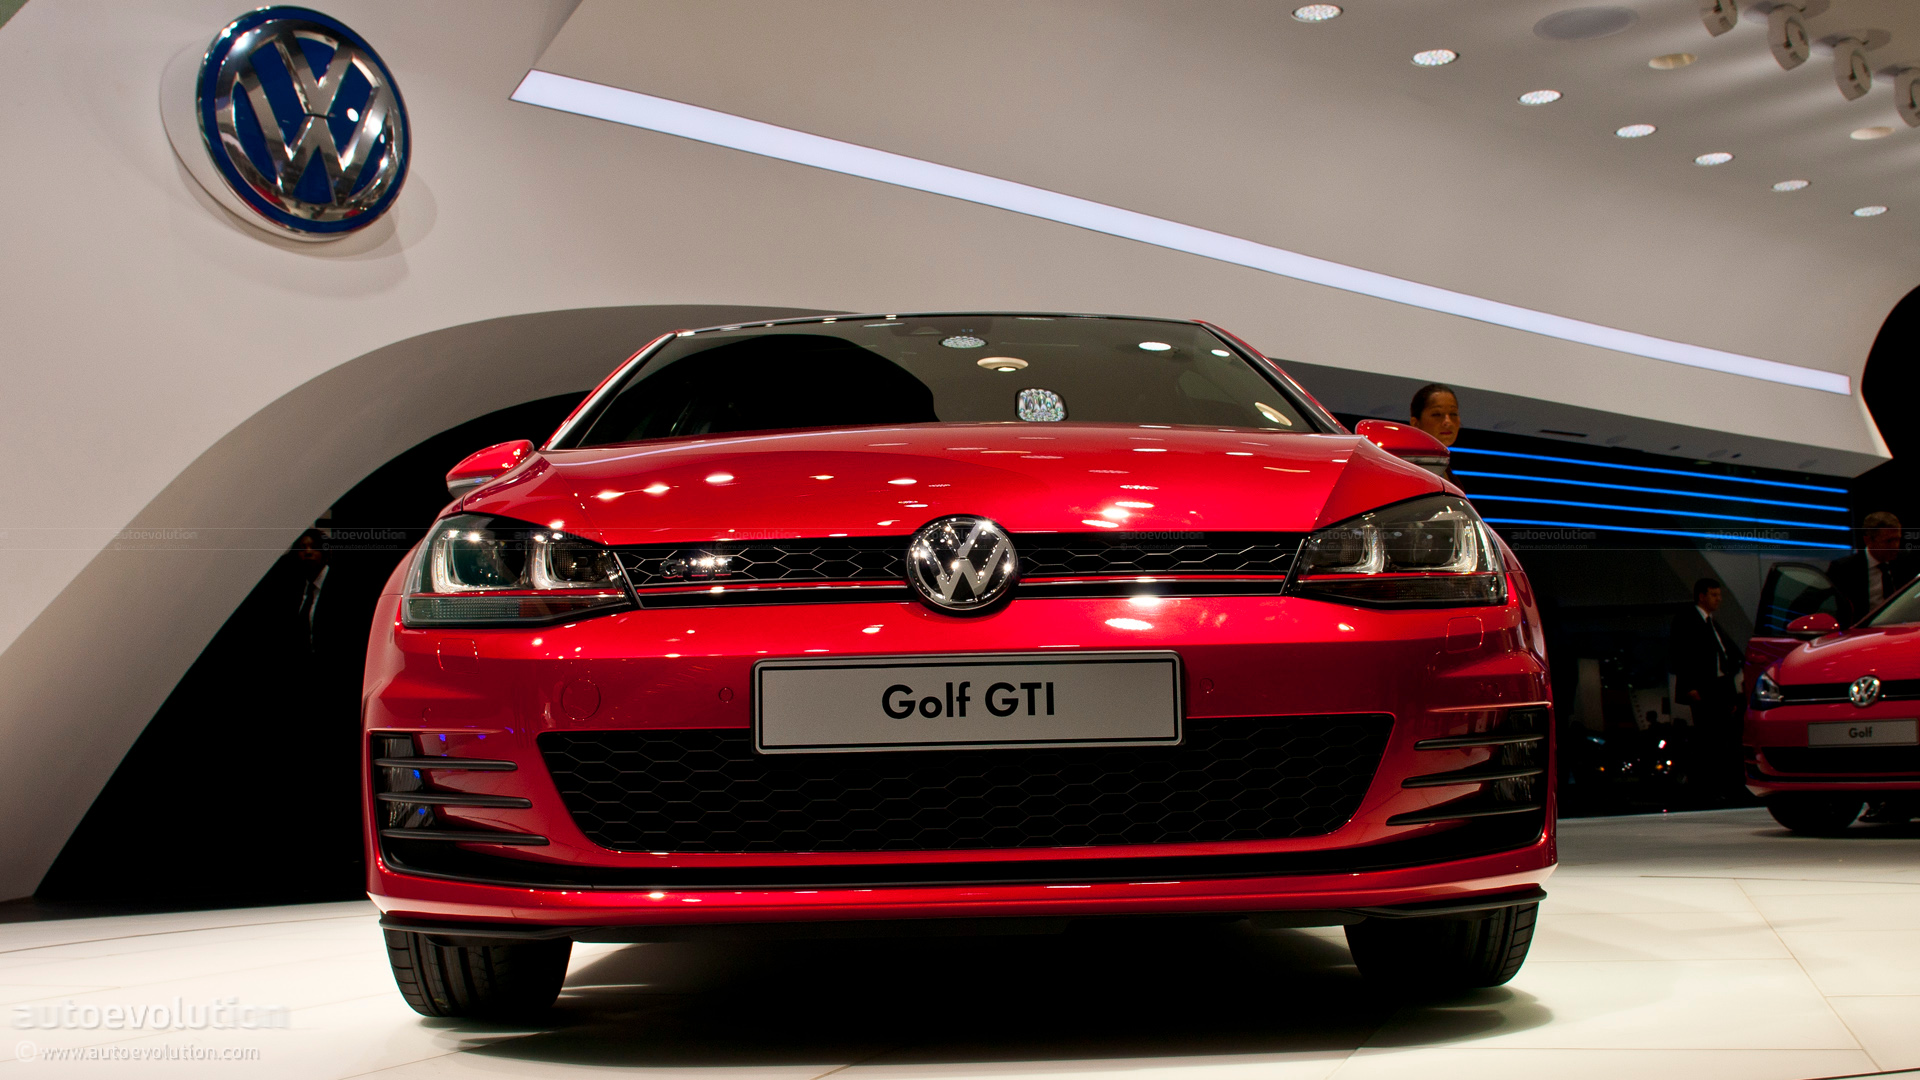 paris 2012 volkswagen golf vii gti concept live photos. Black Bedroom Furniture Sets. Home Design Ideas